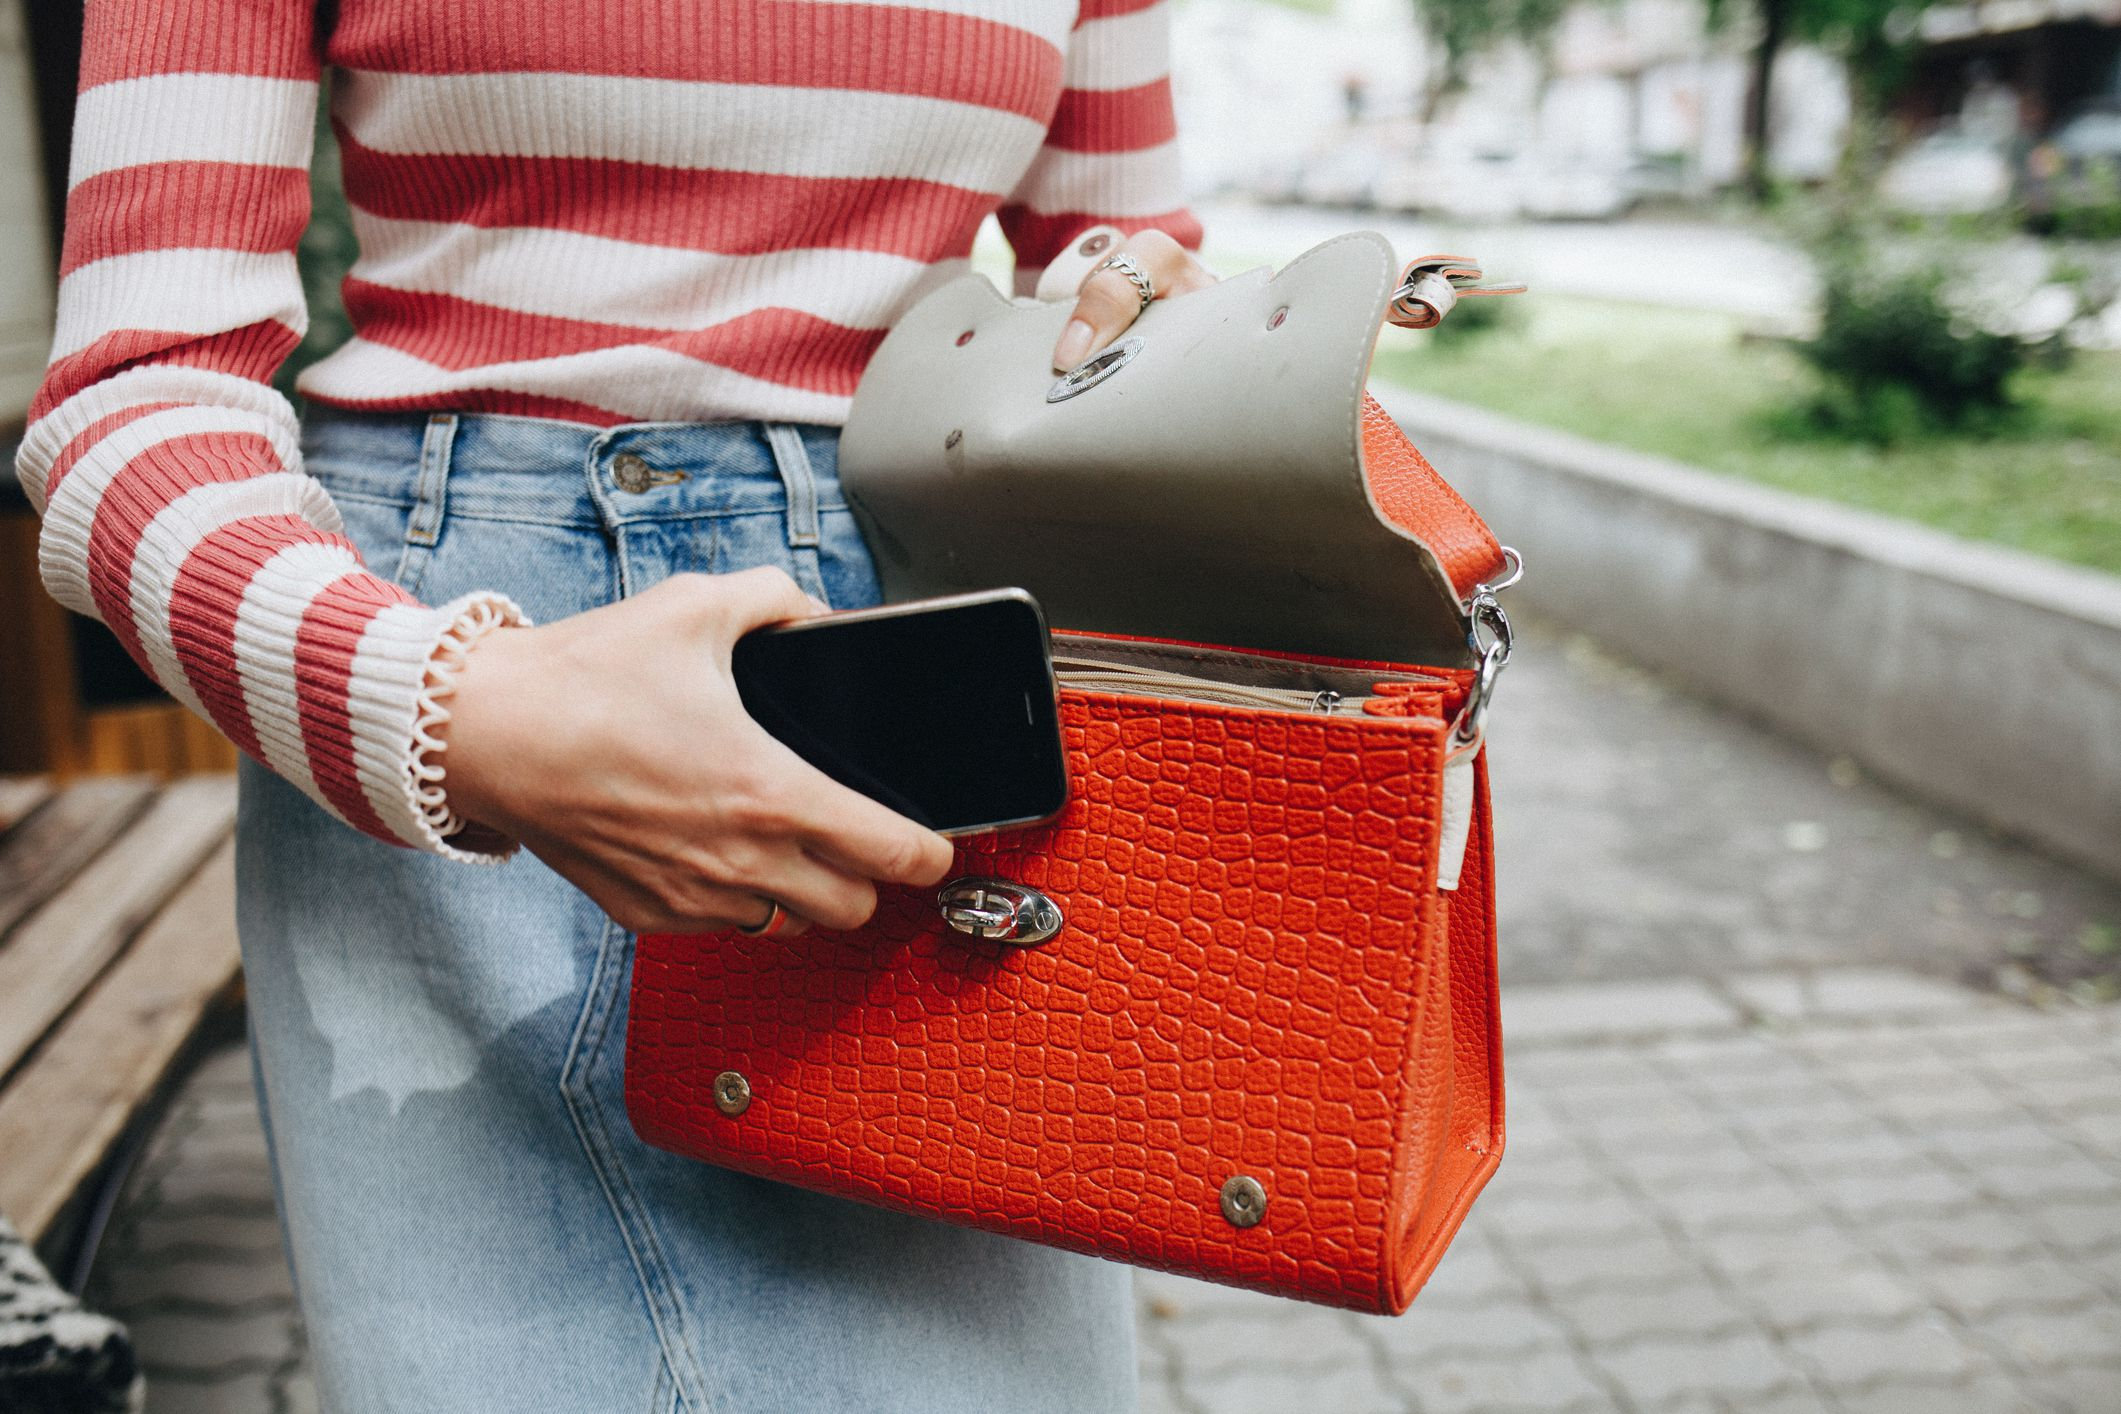 The 8 Best Purse Organizers of 2021